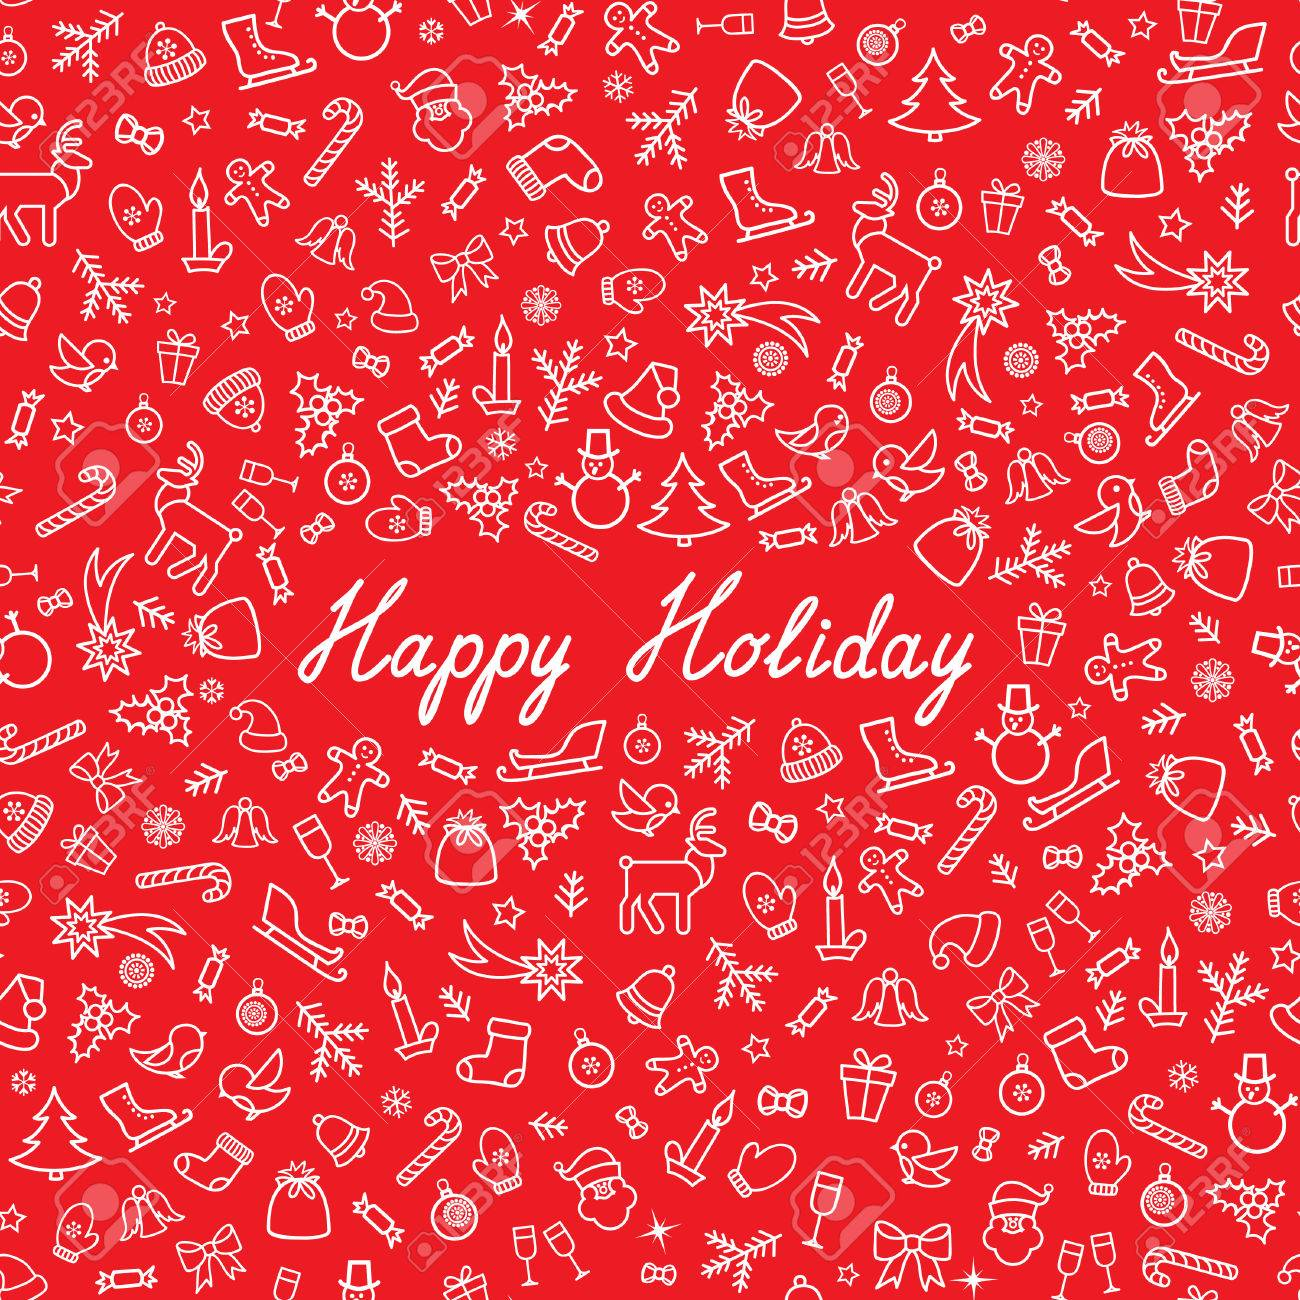 Christmas Icons Seamless Pattern Happy Winter Holiday Wallpaper 1300x1300